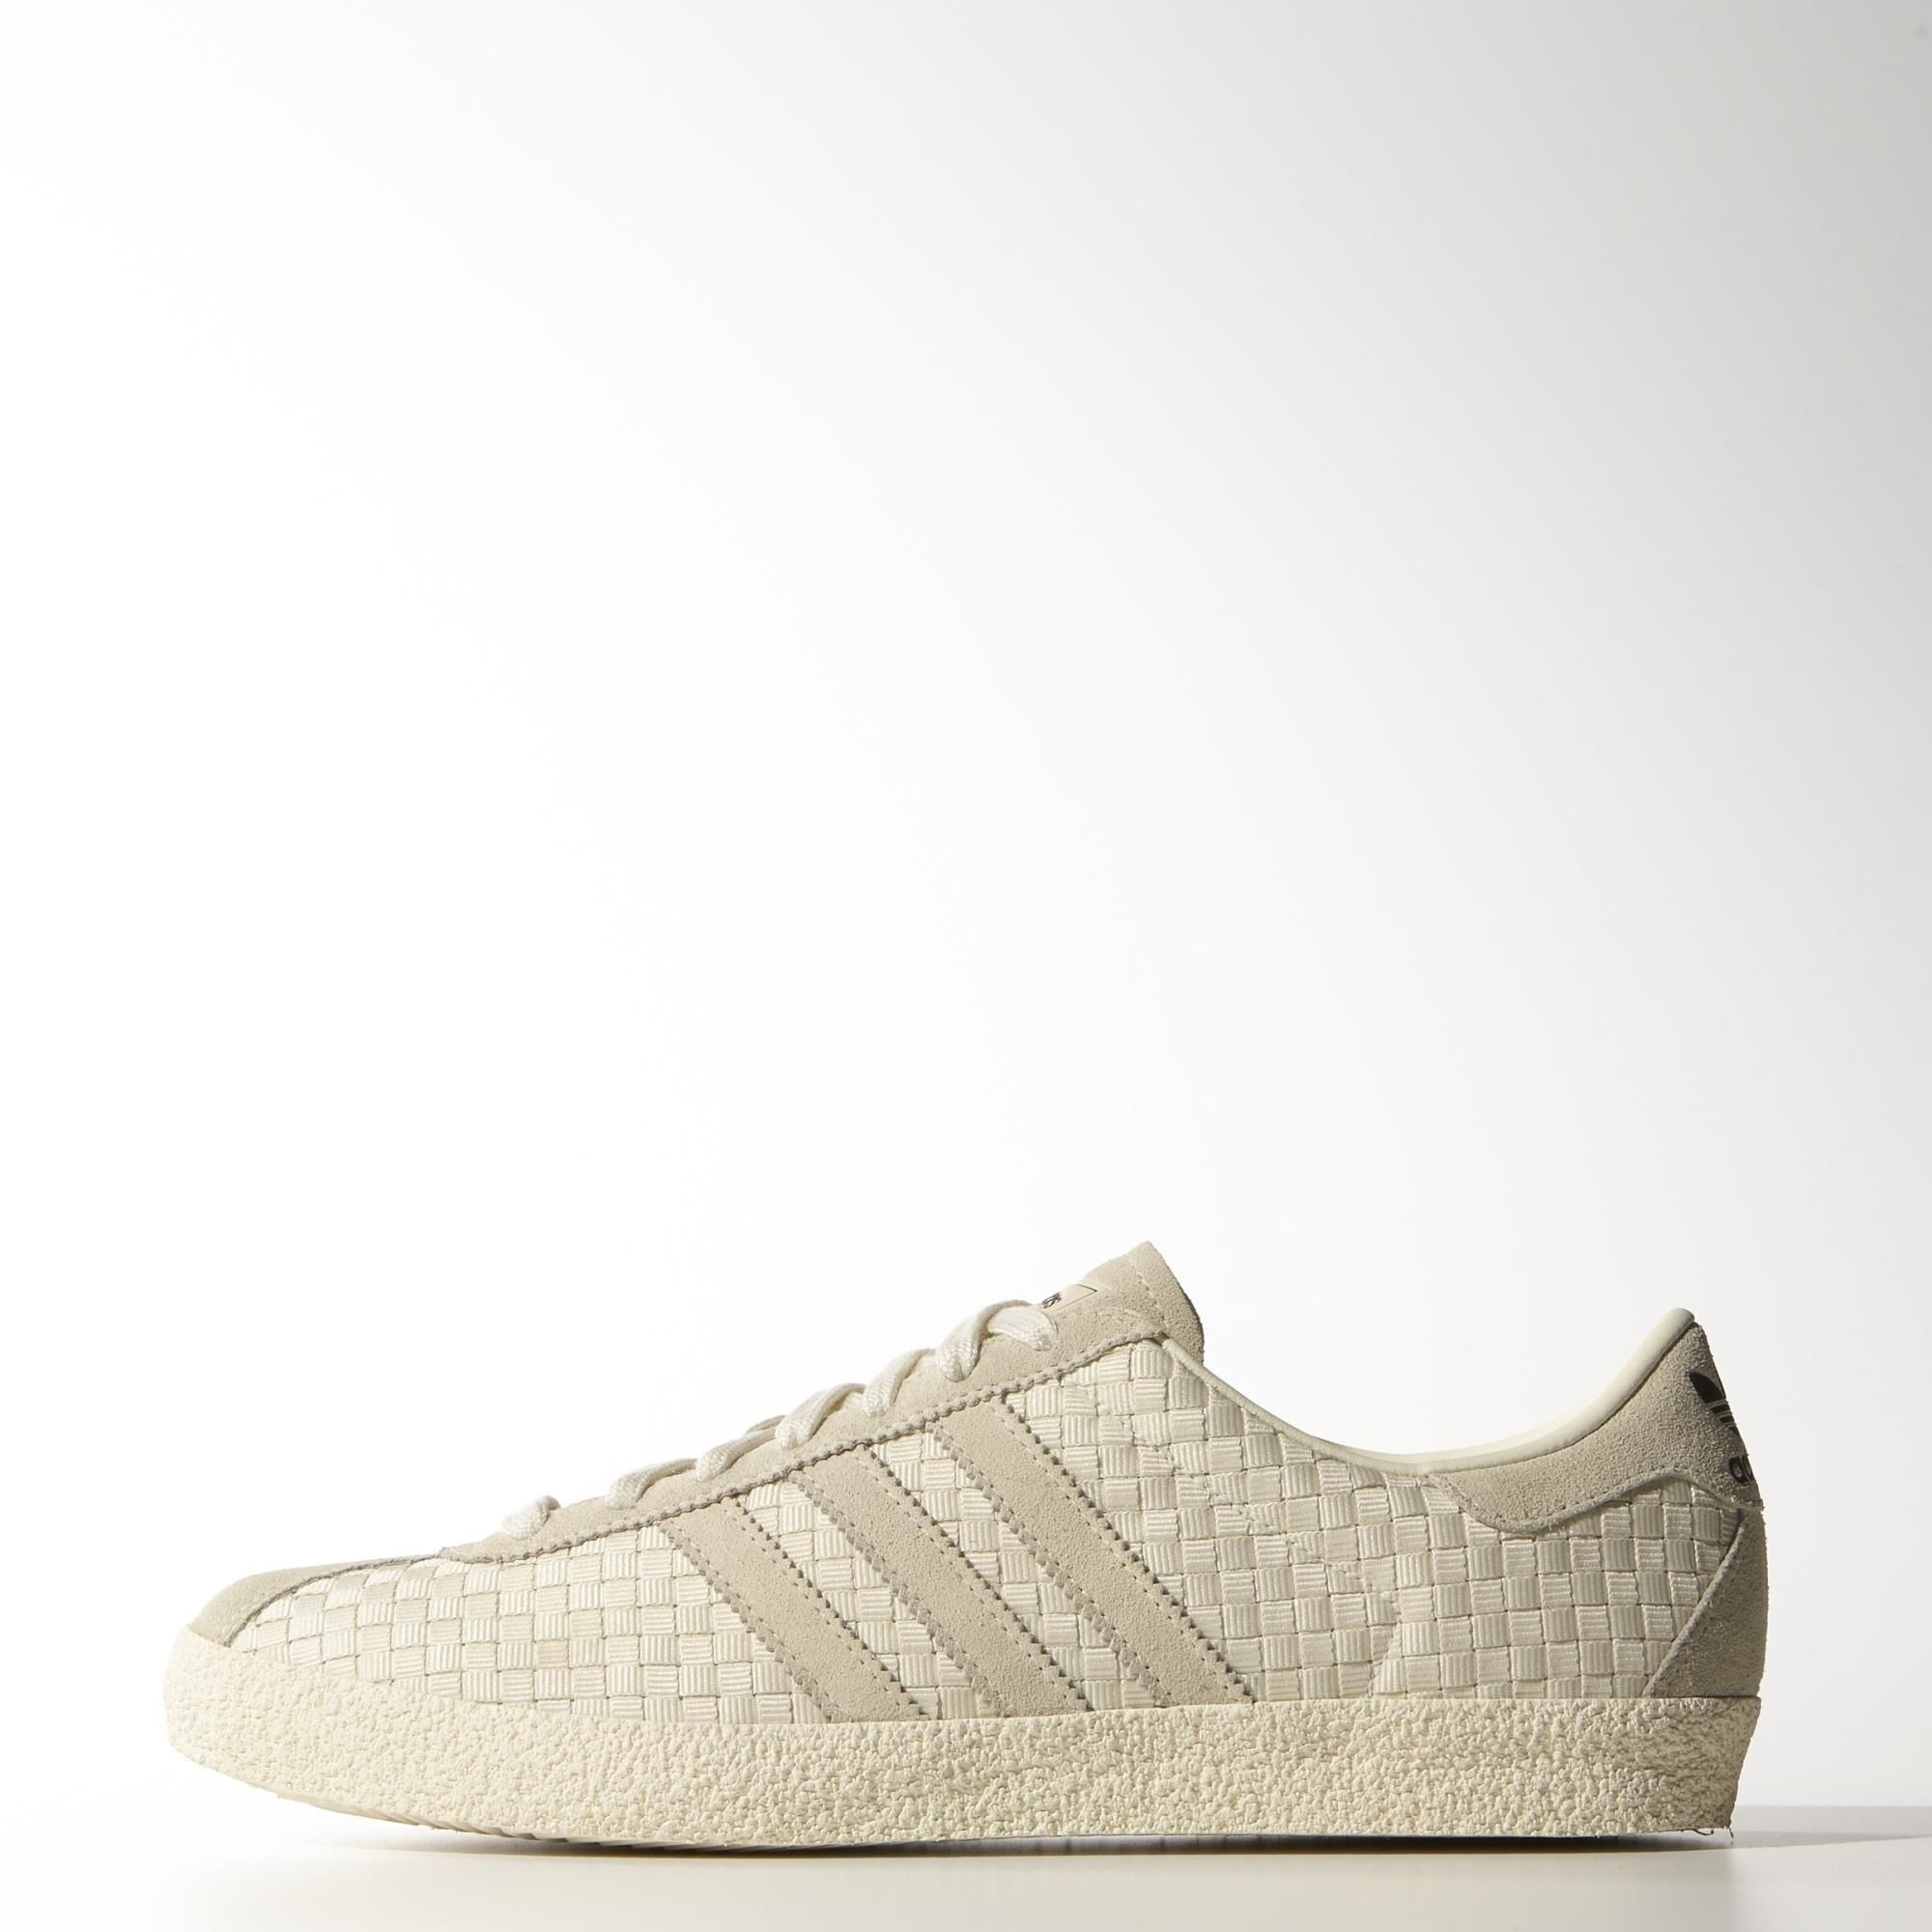 adidas - Gazelle 70s Shoes Cream White / Cream White / Core Black M19619 | Tags: low-top sneakers, suede, tan, beige, taupe, off-white